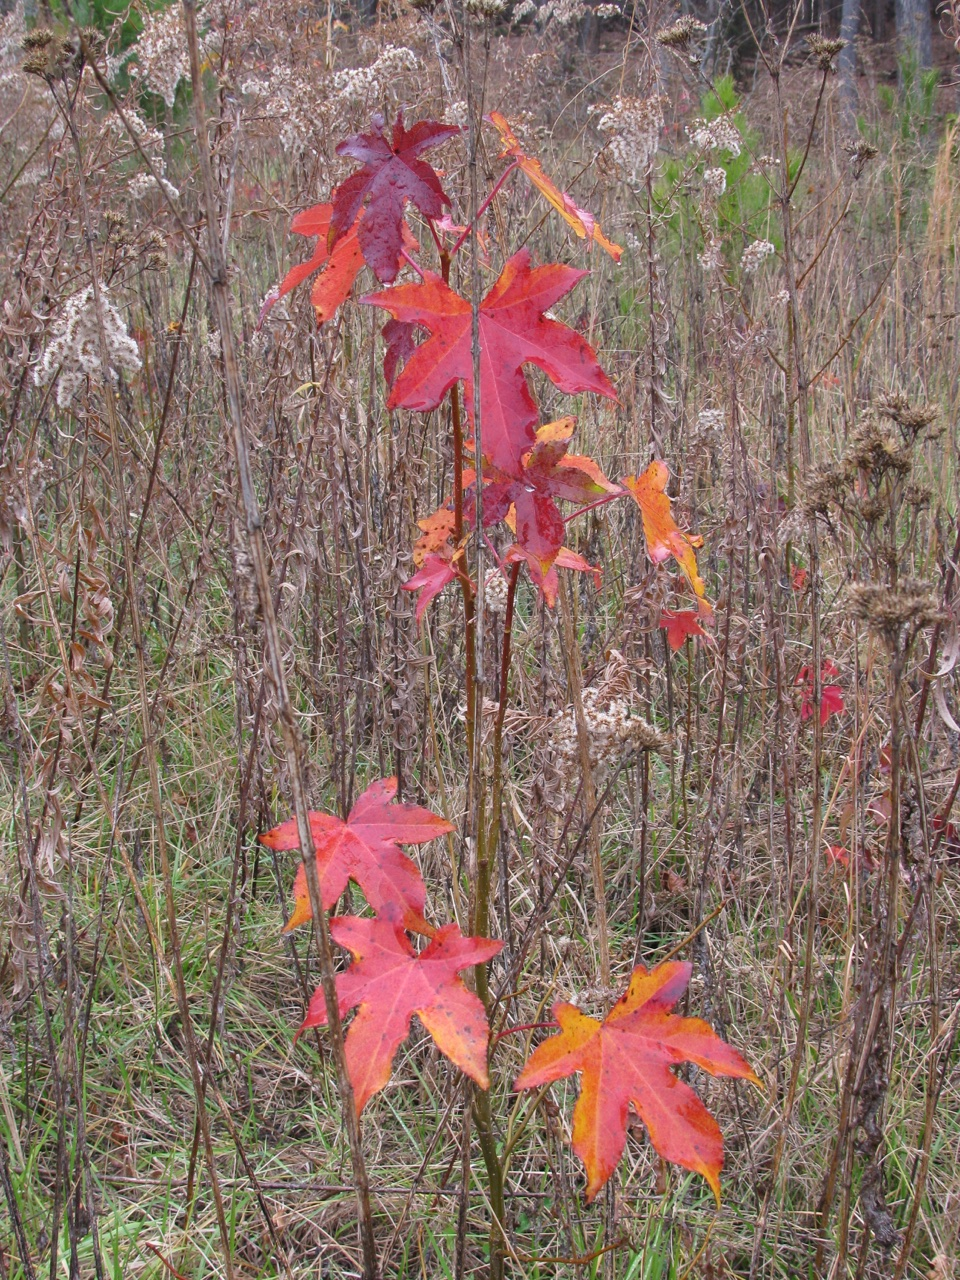 The Scientific Name is Liquidambar styraciflua. You will likely hear them called Sweet Gum, Red Gum, Sweetgum. This picture shows the Colorful Fall foliage of Liquidambar styraciflua